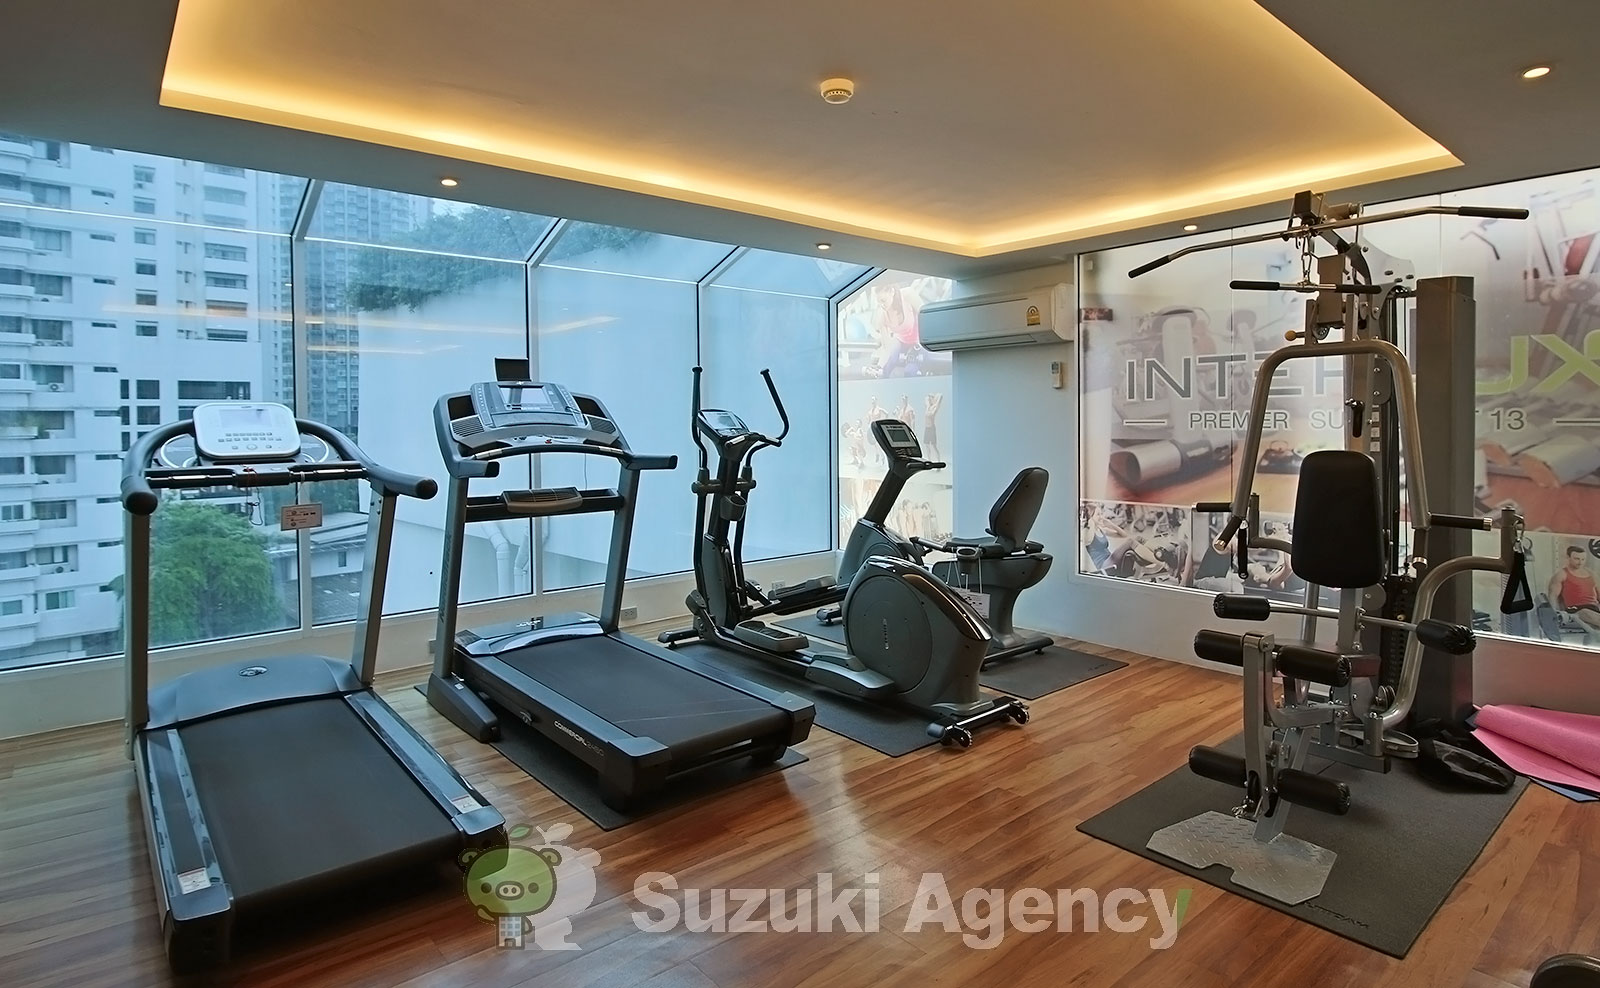 InterLux Premier Sukhumvit 13:Interior & Exterior Photos No.9